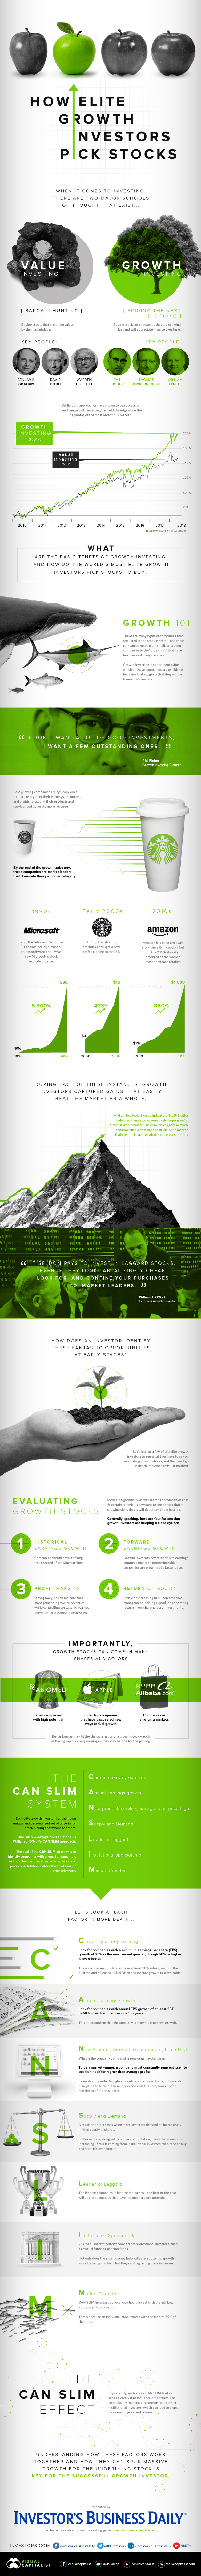 How to Pick the Best Stocks? Learn from the World's Most Elite Investors - Infographic